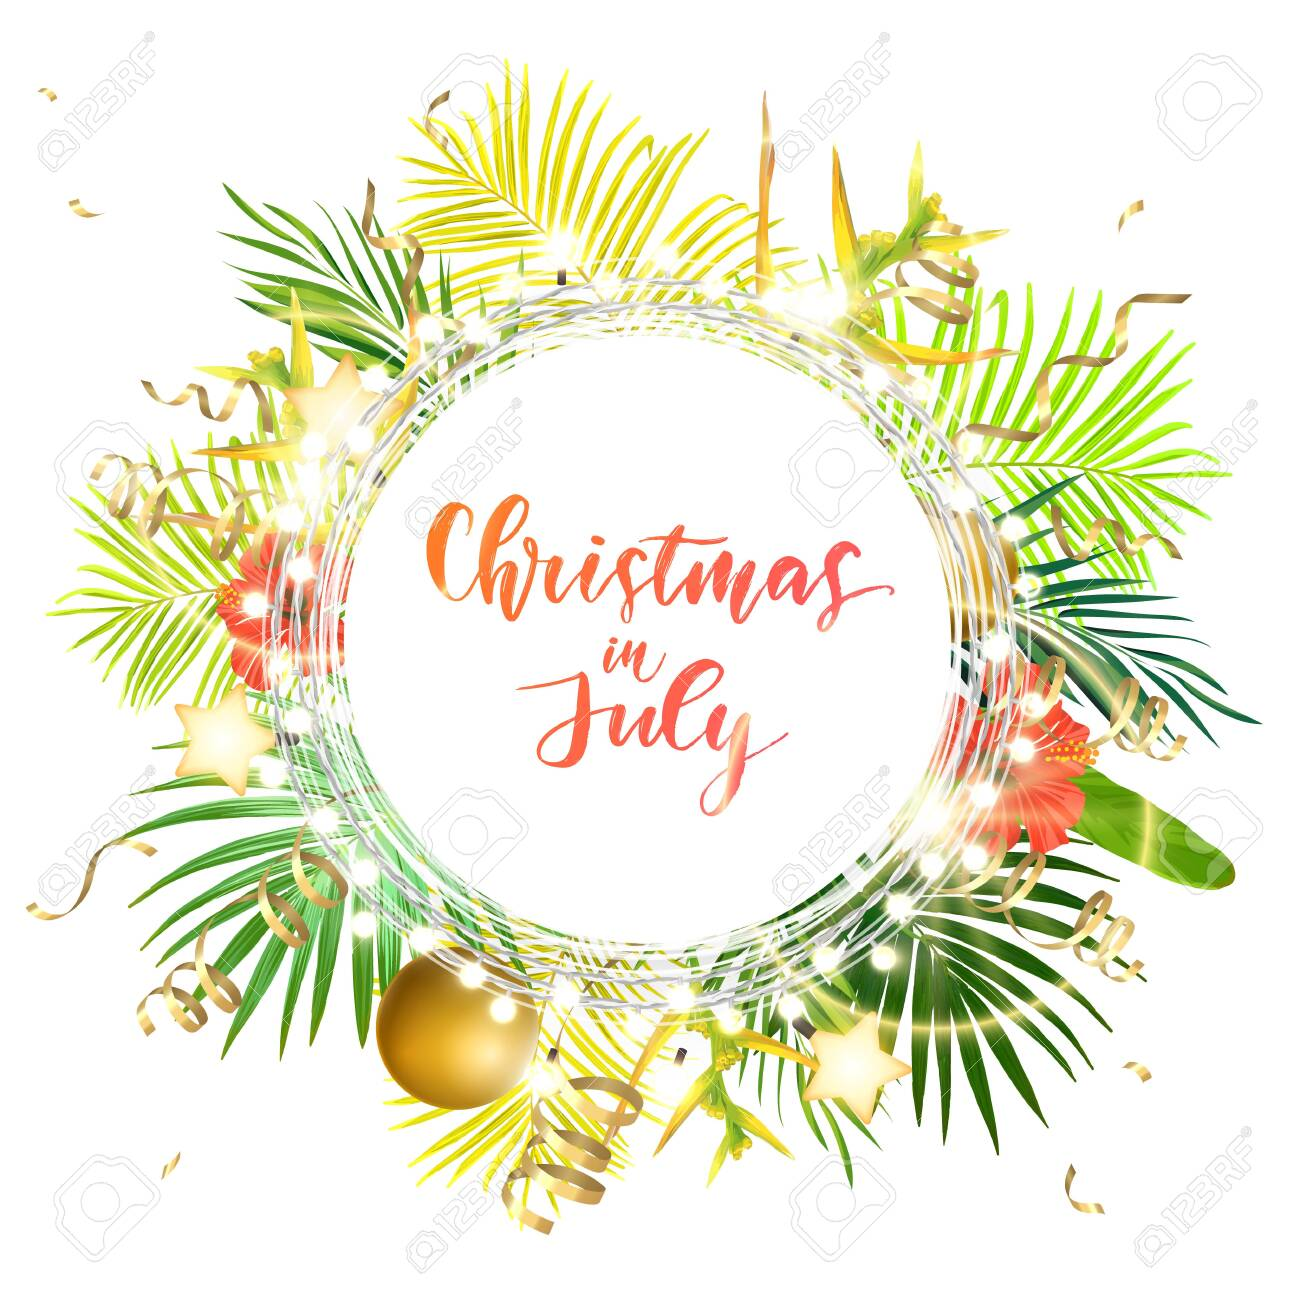 Christmas on the summer beach design with green palm leaves, tropical flowers, xmas balls, decorative light bulbs and gold glowing stars, vector illustration. - 130487544